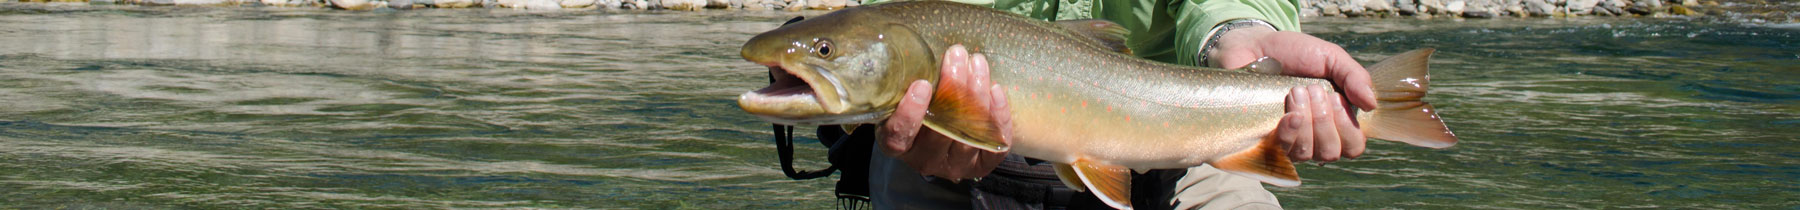 General Info | Guided Fly Fishing in Fernie BC at Fernie Wilderness Adventures